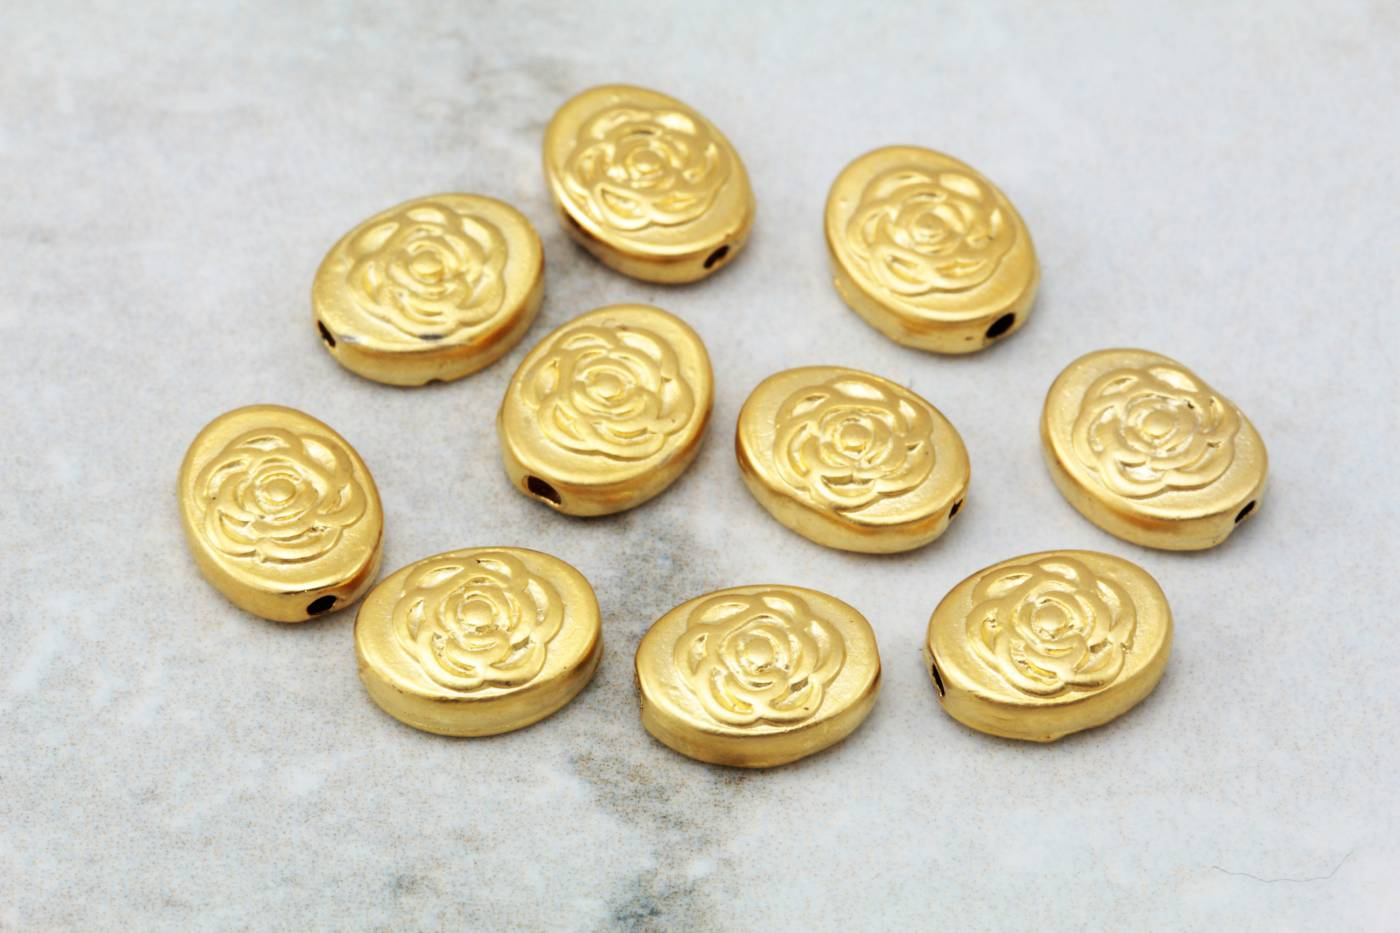 gold-plated-oval-rose-patterned-charms.jpg